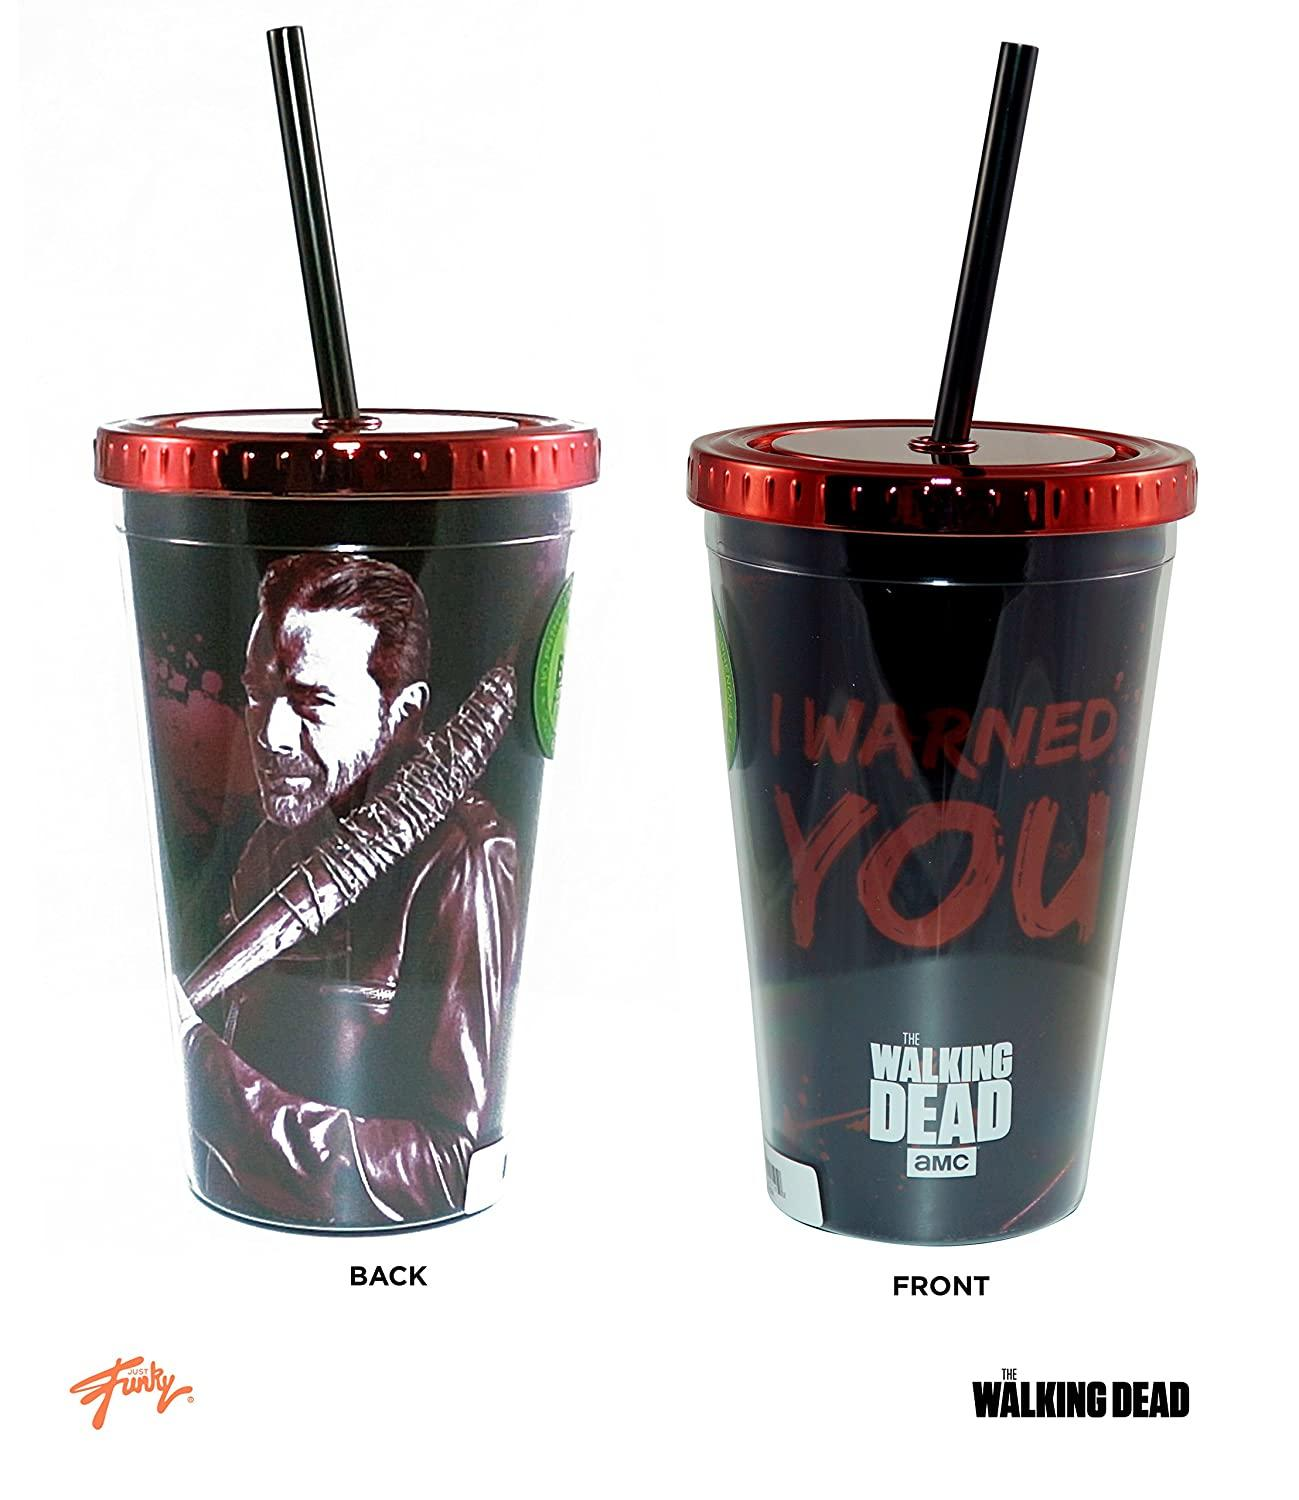 Walking Dead S7 Negan Carnival Cup